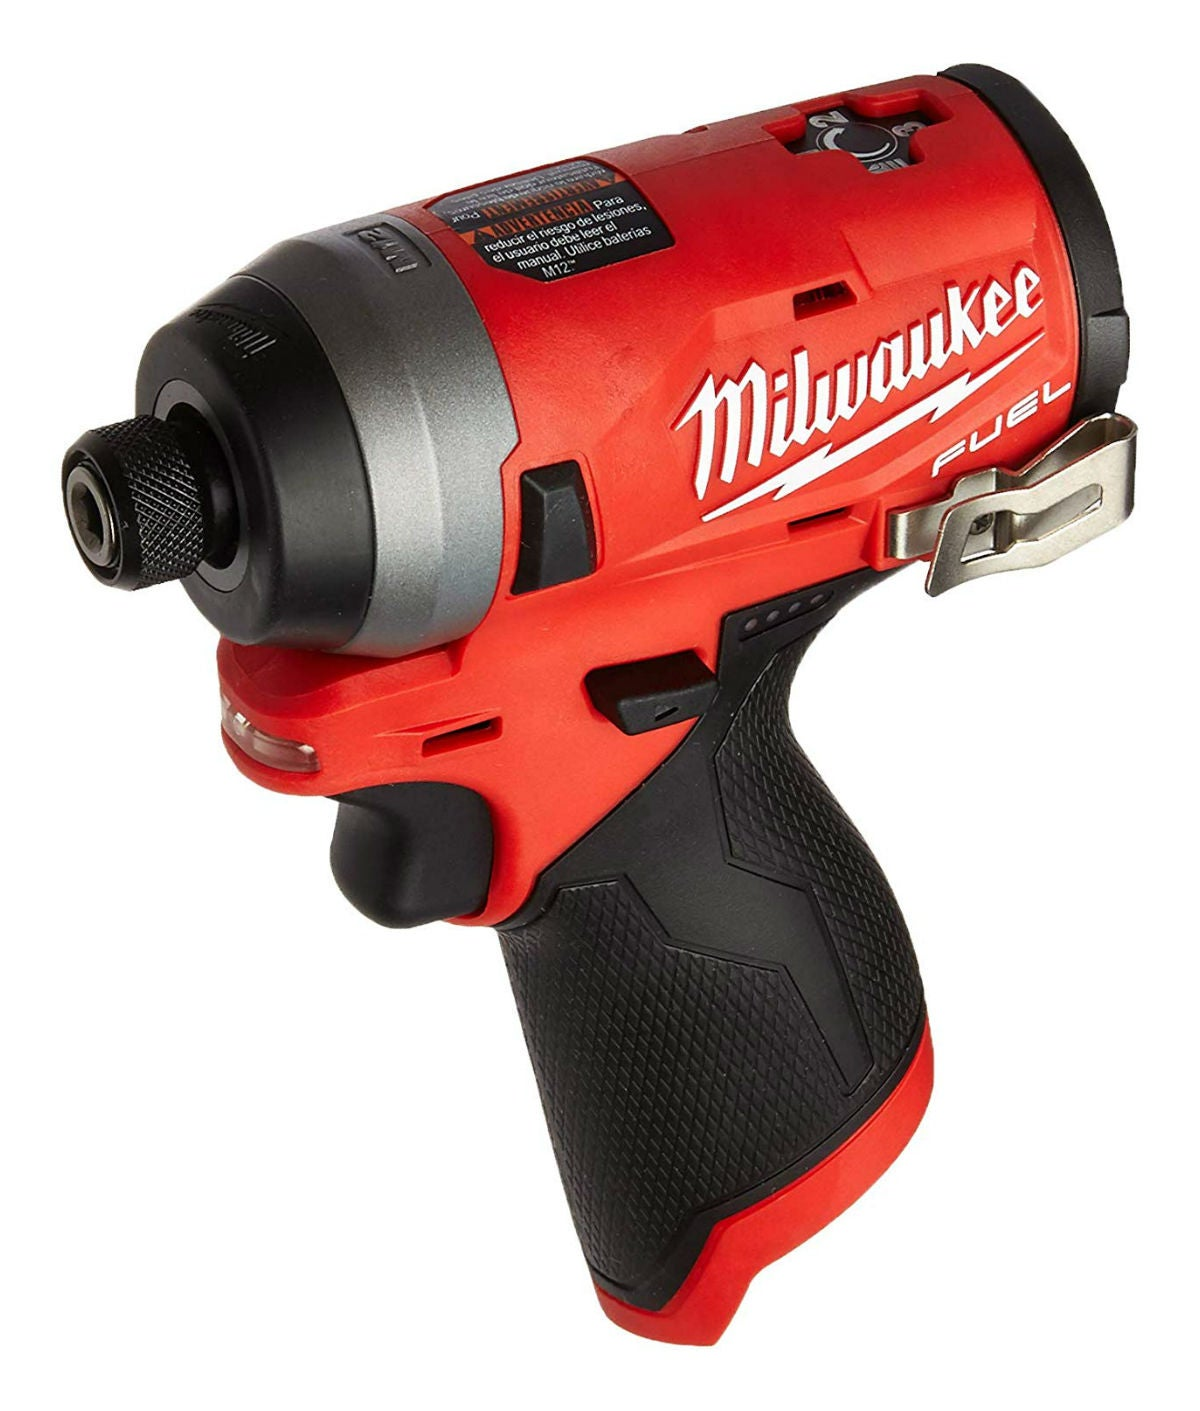 Best Impact Driver Options: Milwaukee M12 12-V Impact Driver